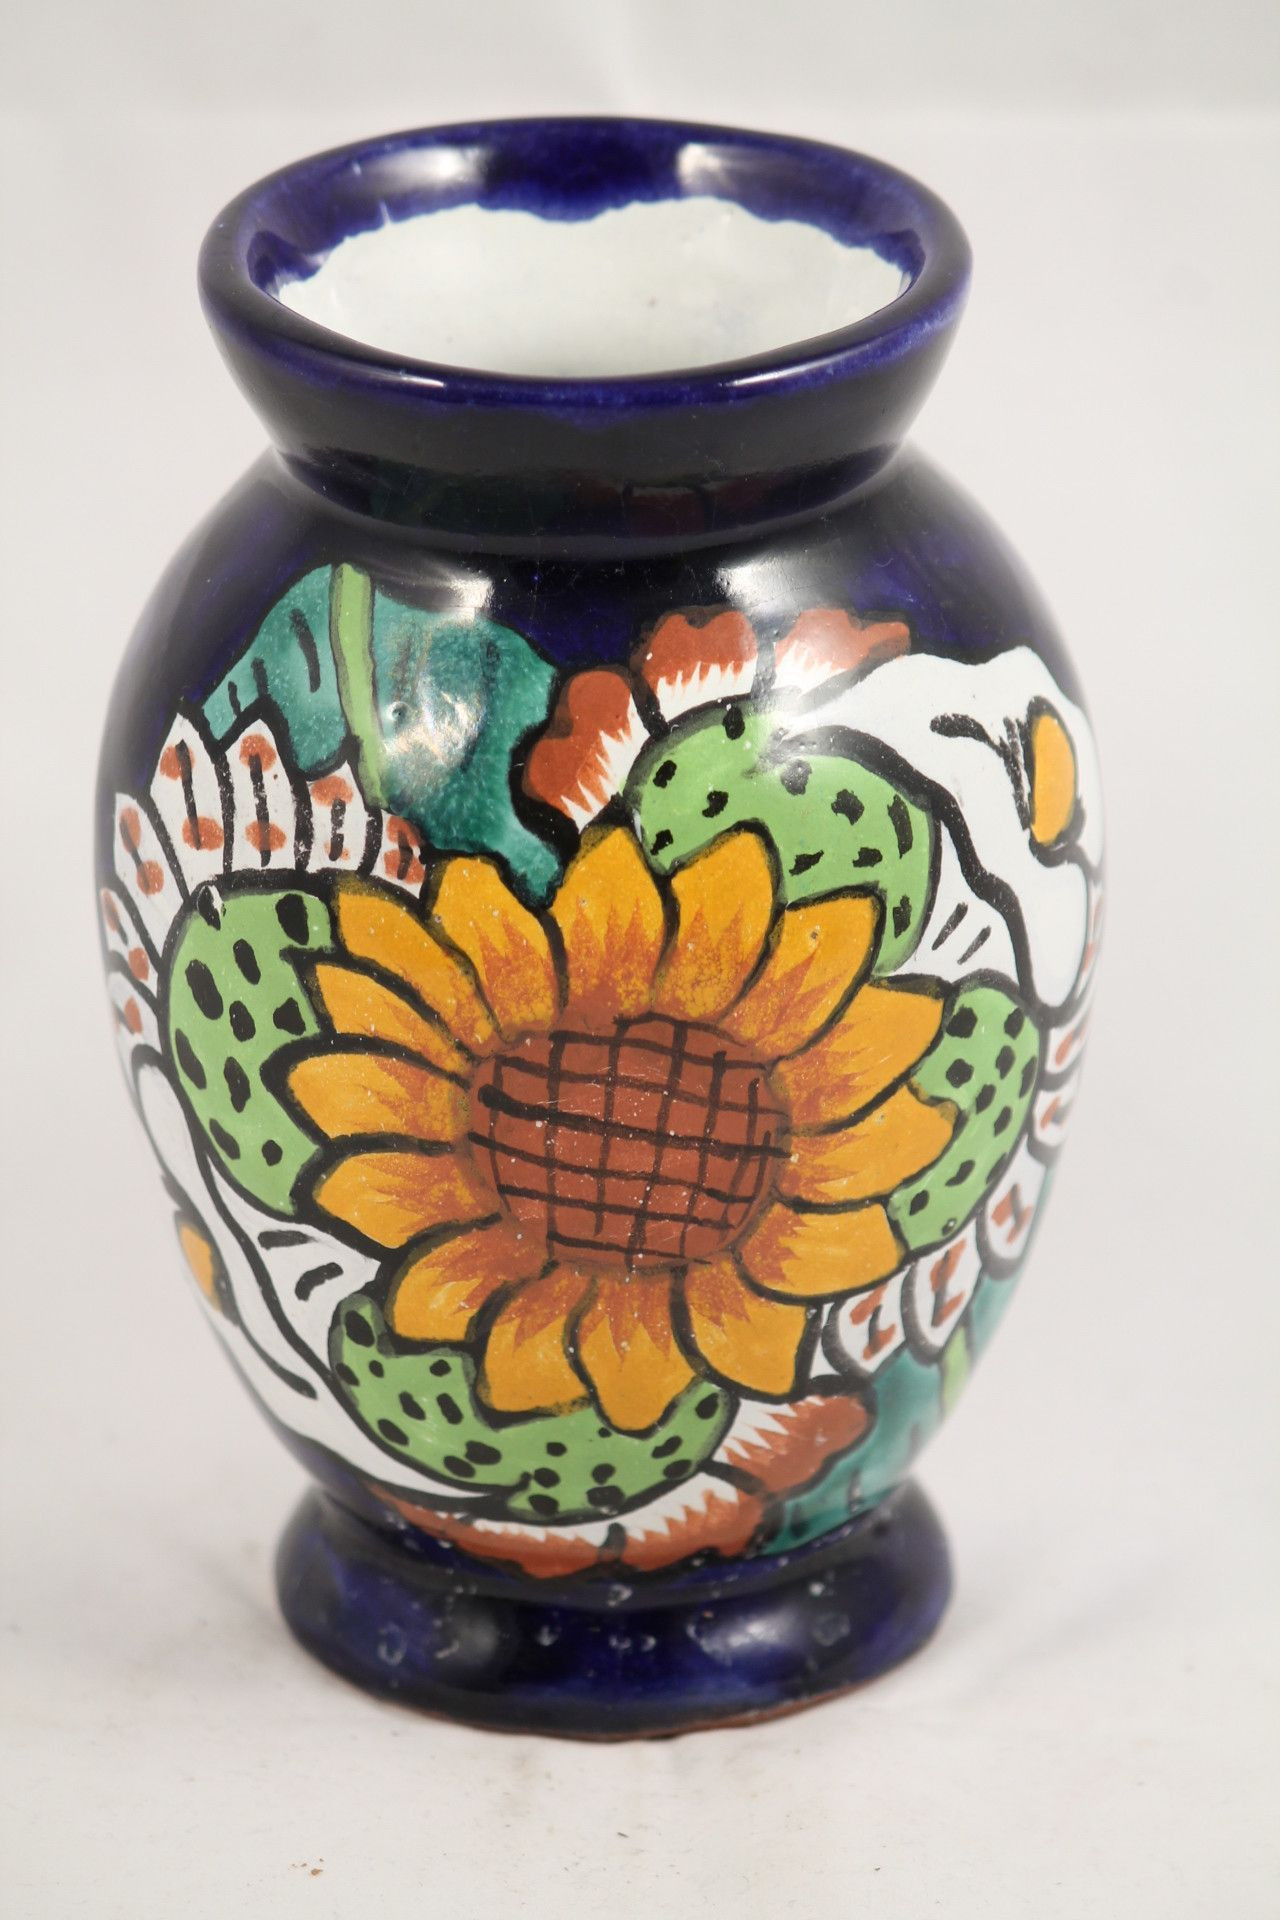 square glass vase hobby lobby of mirror flower vase collection unique metal vases 3h mirrored mosaic throughout mirror flower vase photos small hand painted mexican ceramic flower vase mirror of mirror flower vase